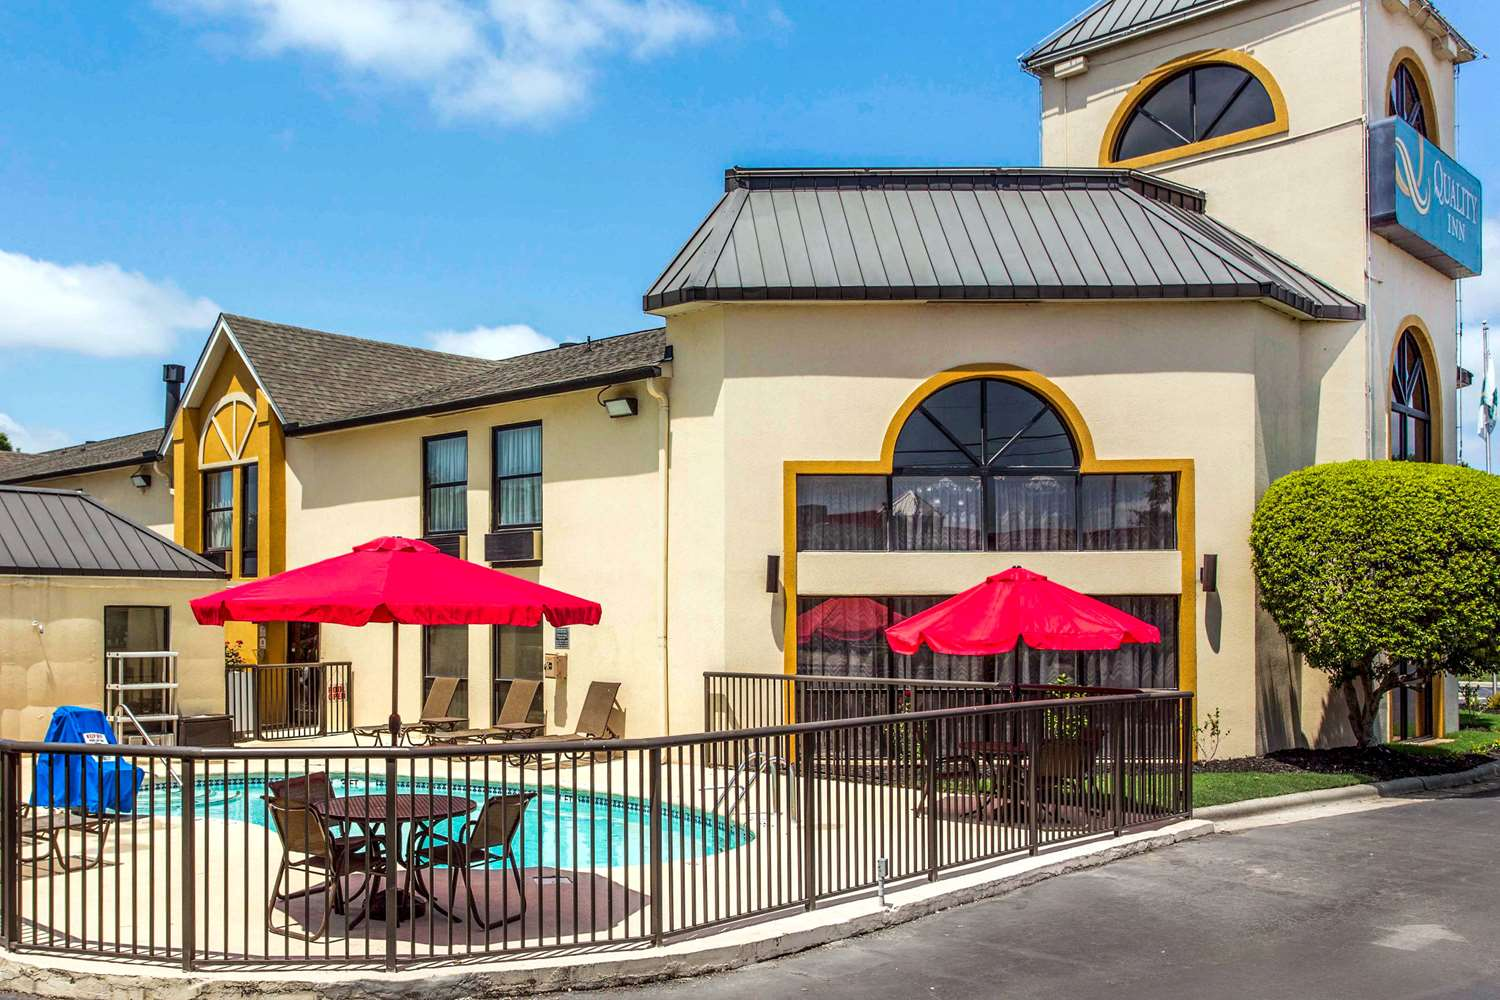 Hotels near Carowinds Fort Mill, South Carolina